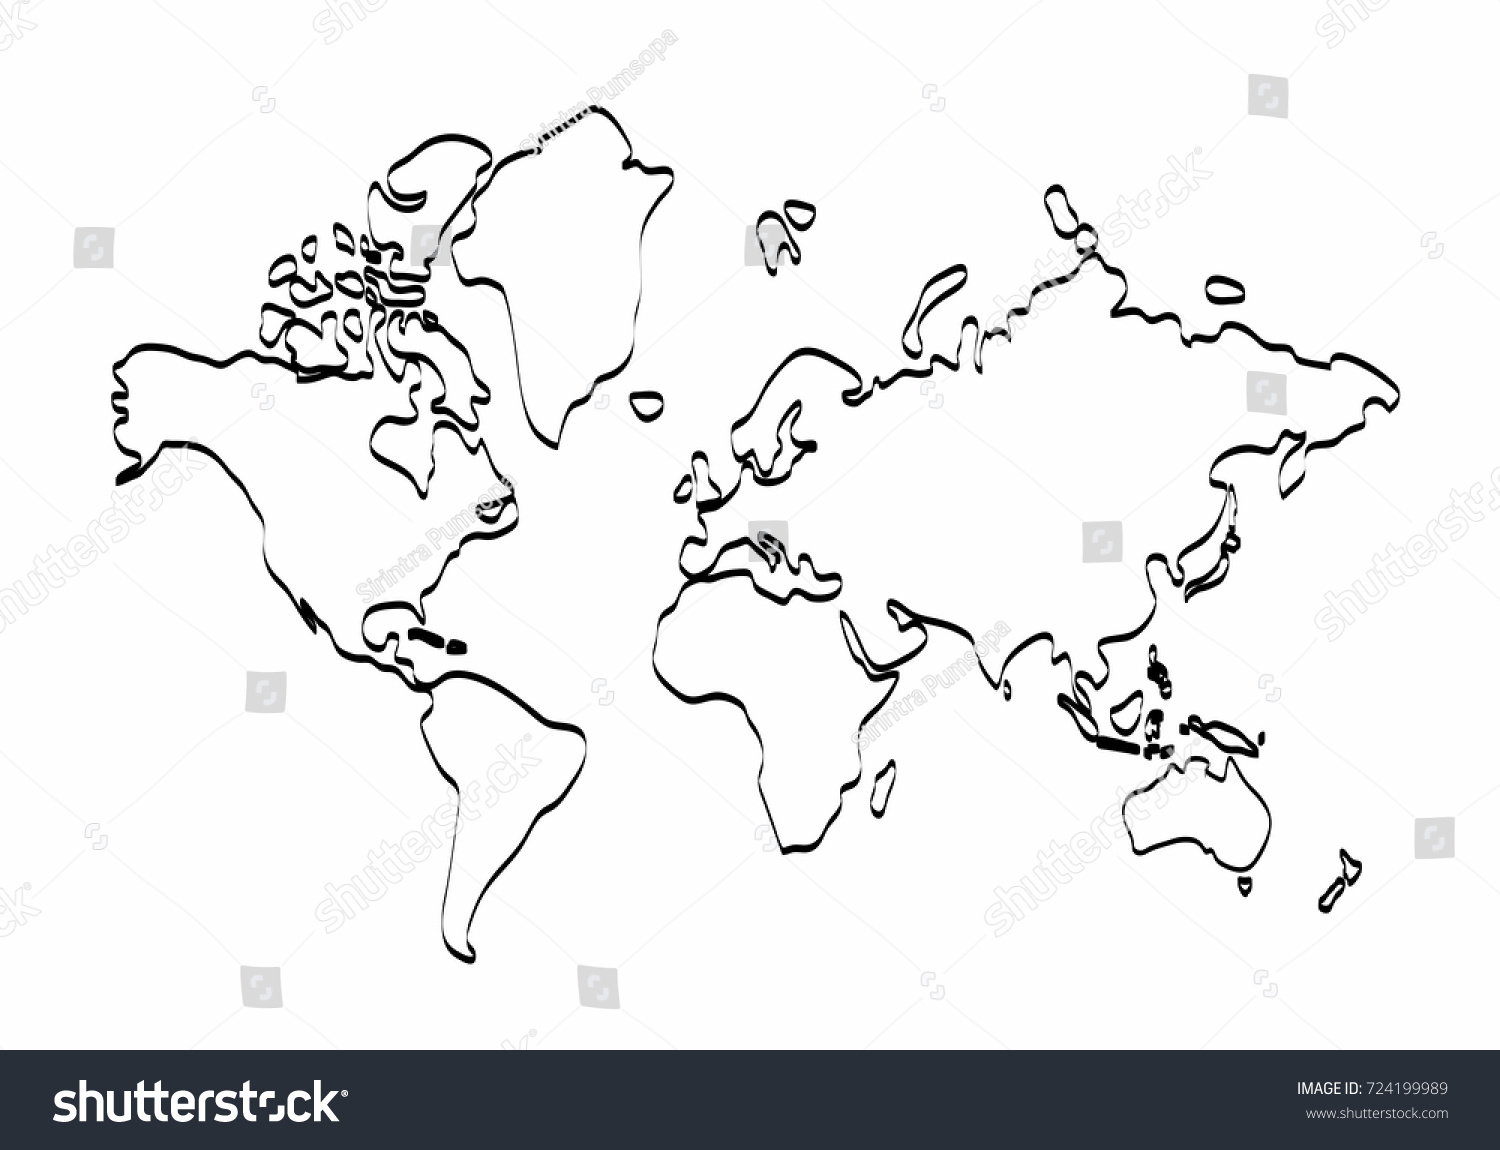 World map outline graphic freehand drawing vectores en stock world map outline graphic freehand drawing on white background vector of asia europe gumiabroncs Gallery